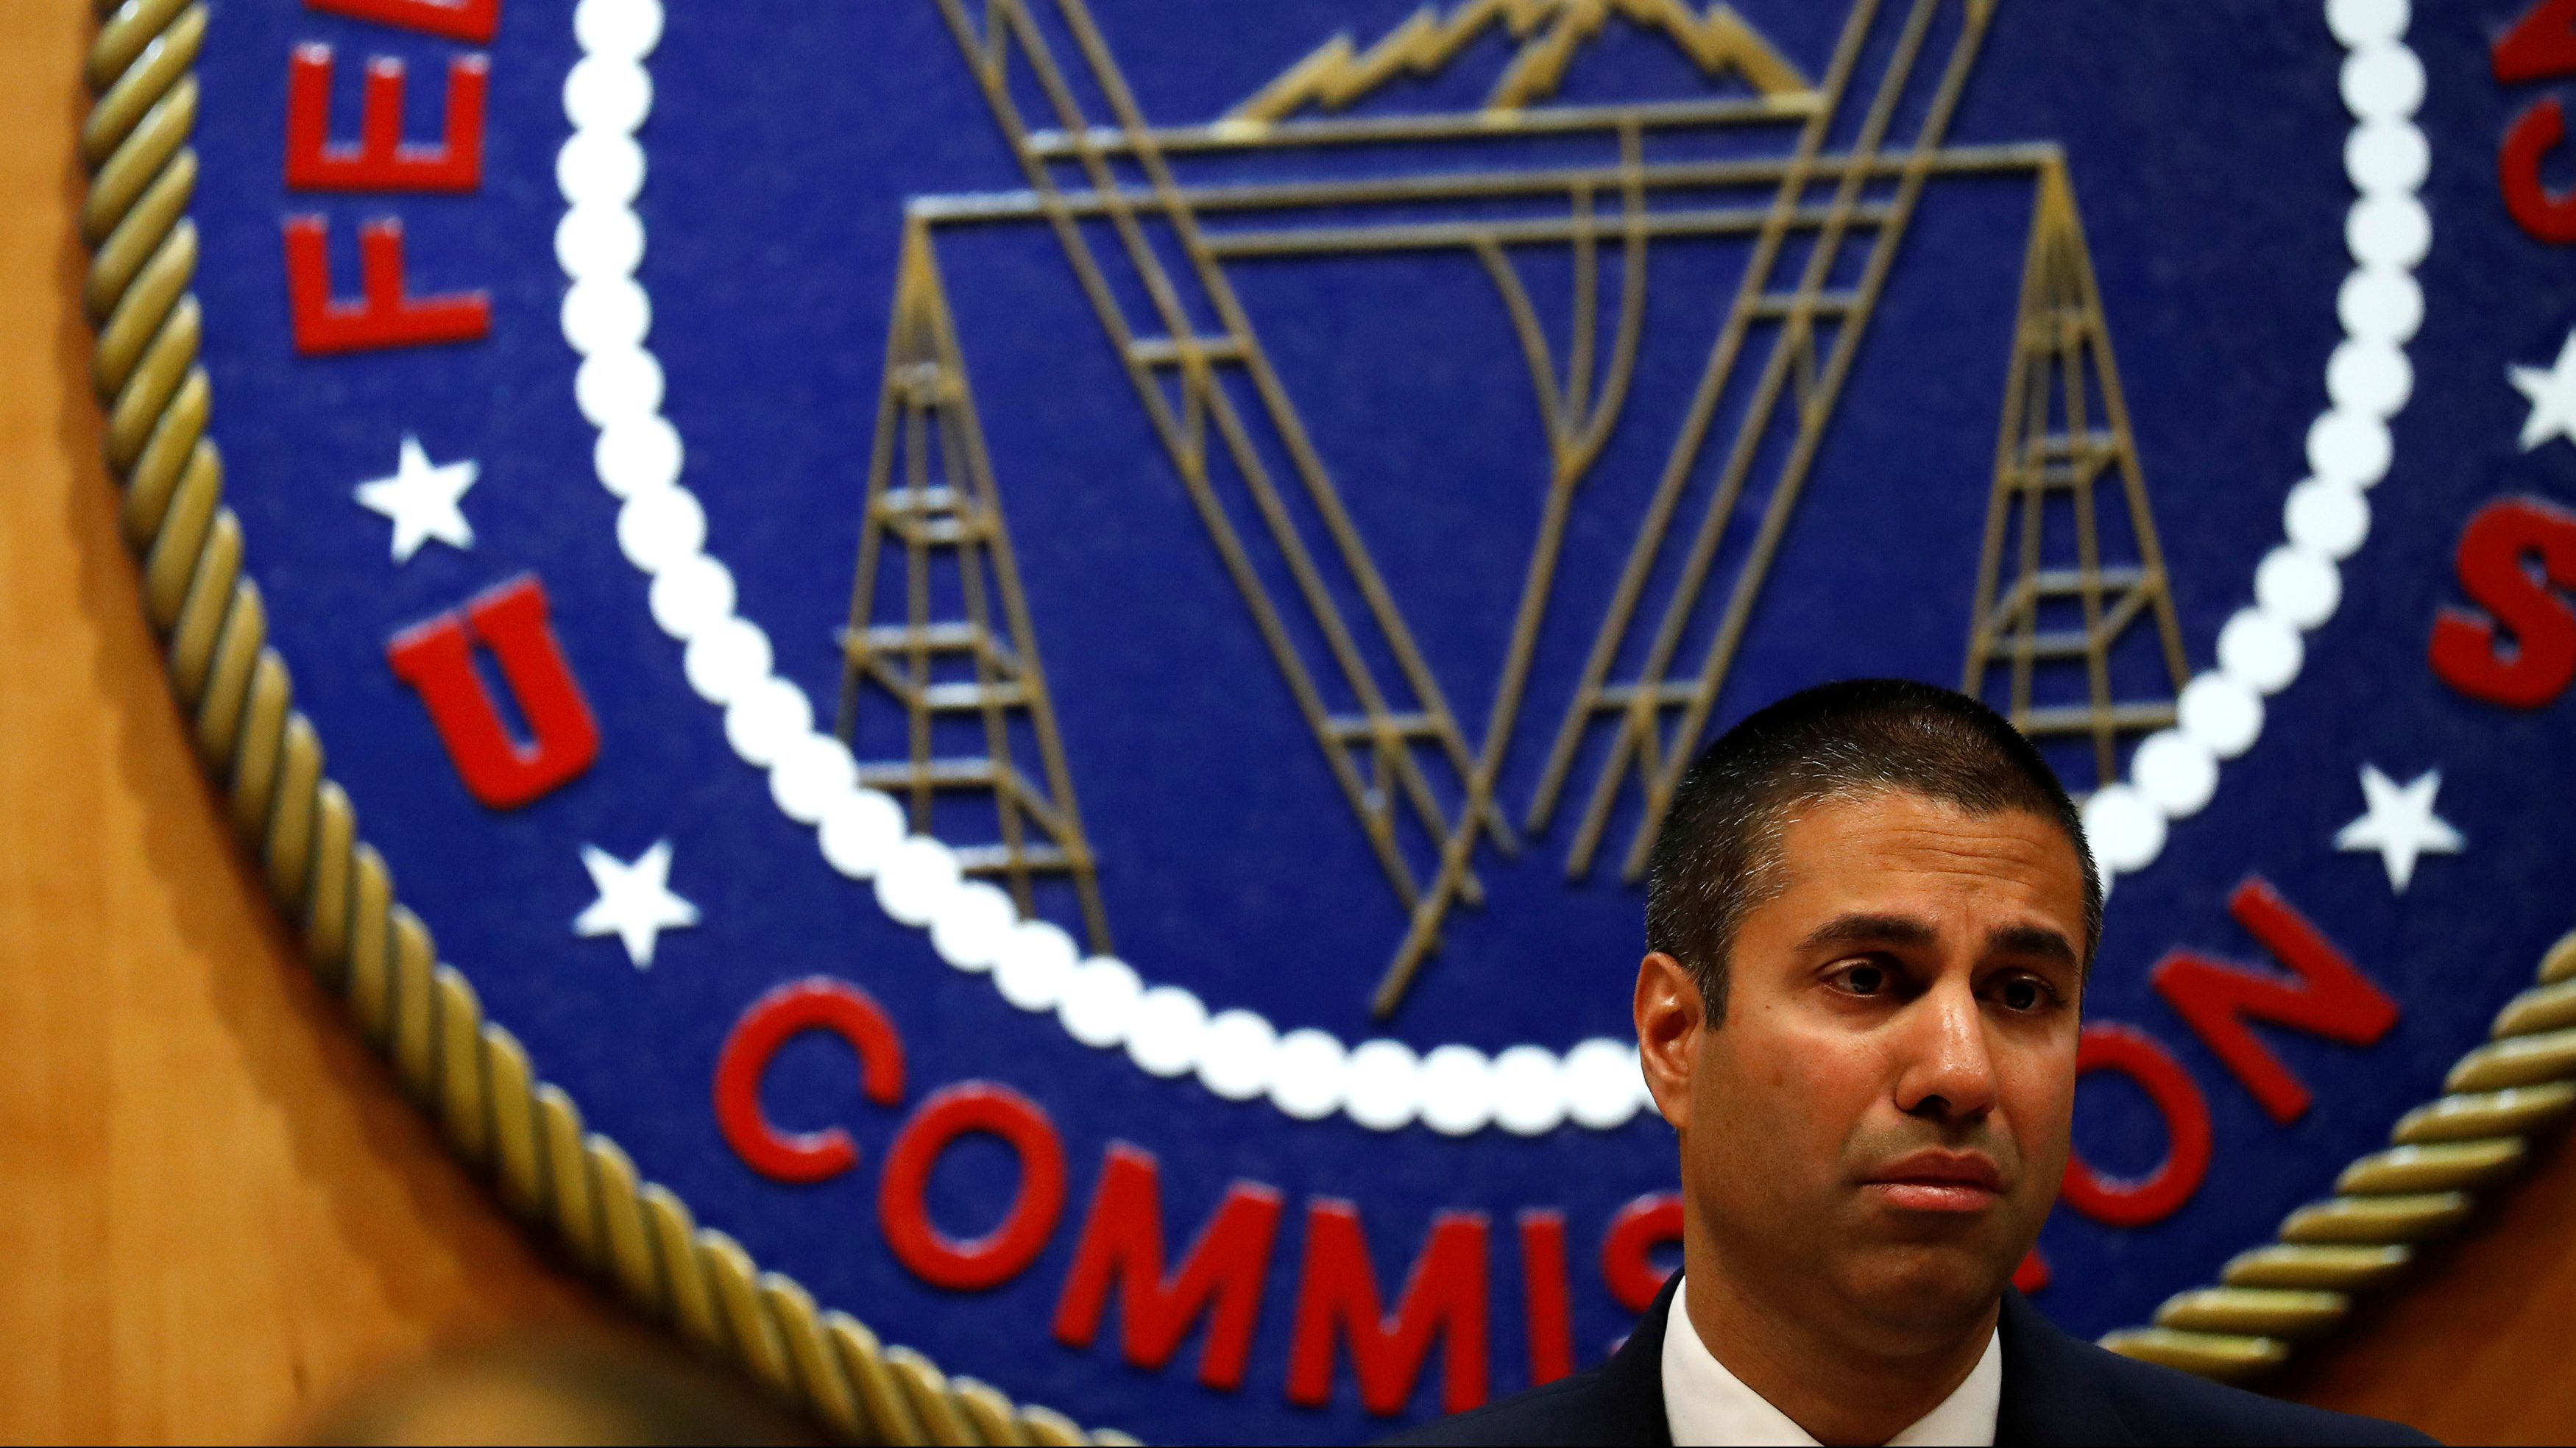 Chairman Ajit Pai speaks ahead of the vote on the repeal of so called net neutrality rules at the Federal Communications Commission in Washington, U.S., December 14, 2017. REUTERS/Aaron P. Bernstein - RC1ED2FADBB0